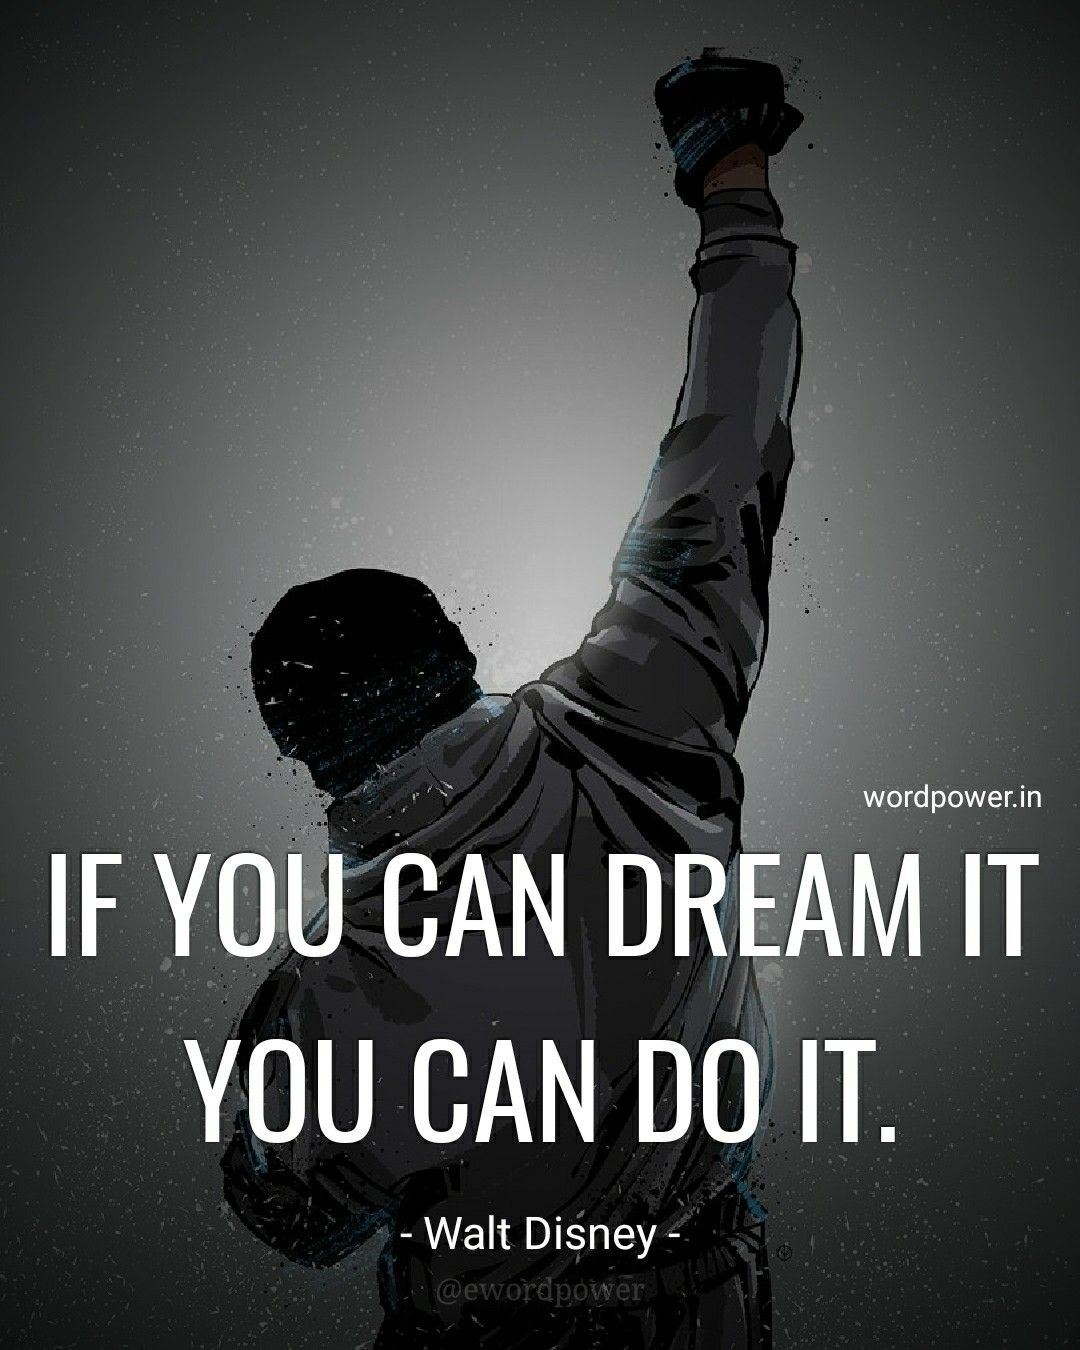 If You Can Dream It You Can Do It Walt Disney Quotes From Wordpower In Attitude Quotes For Boys Desire Quotes Inpirational Quotes